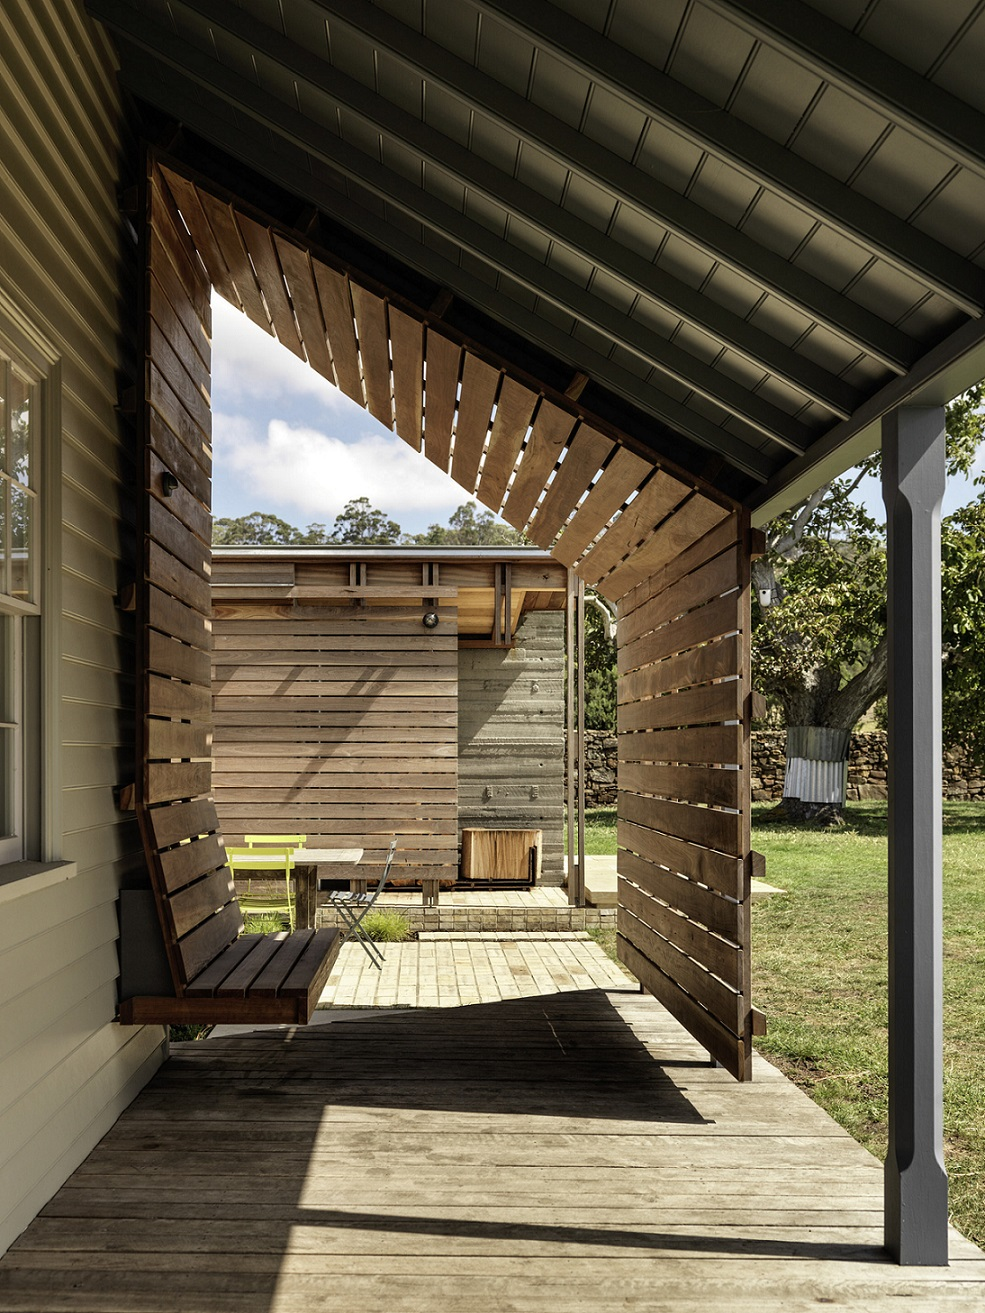 The restored verandah is updated with sheltered seating Trevor Mein